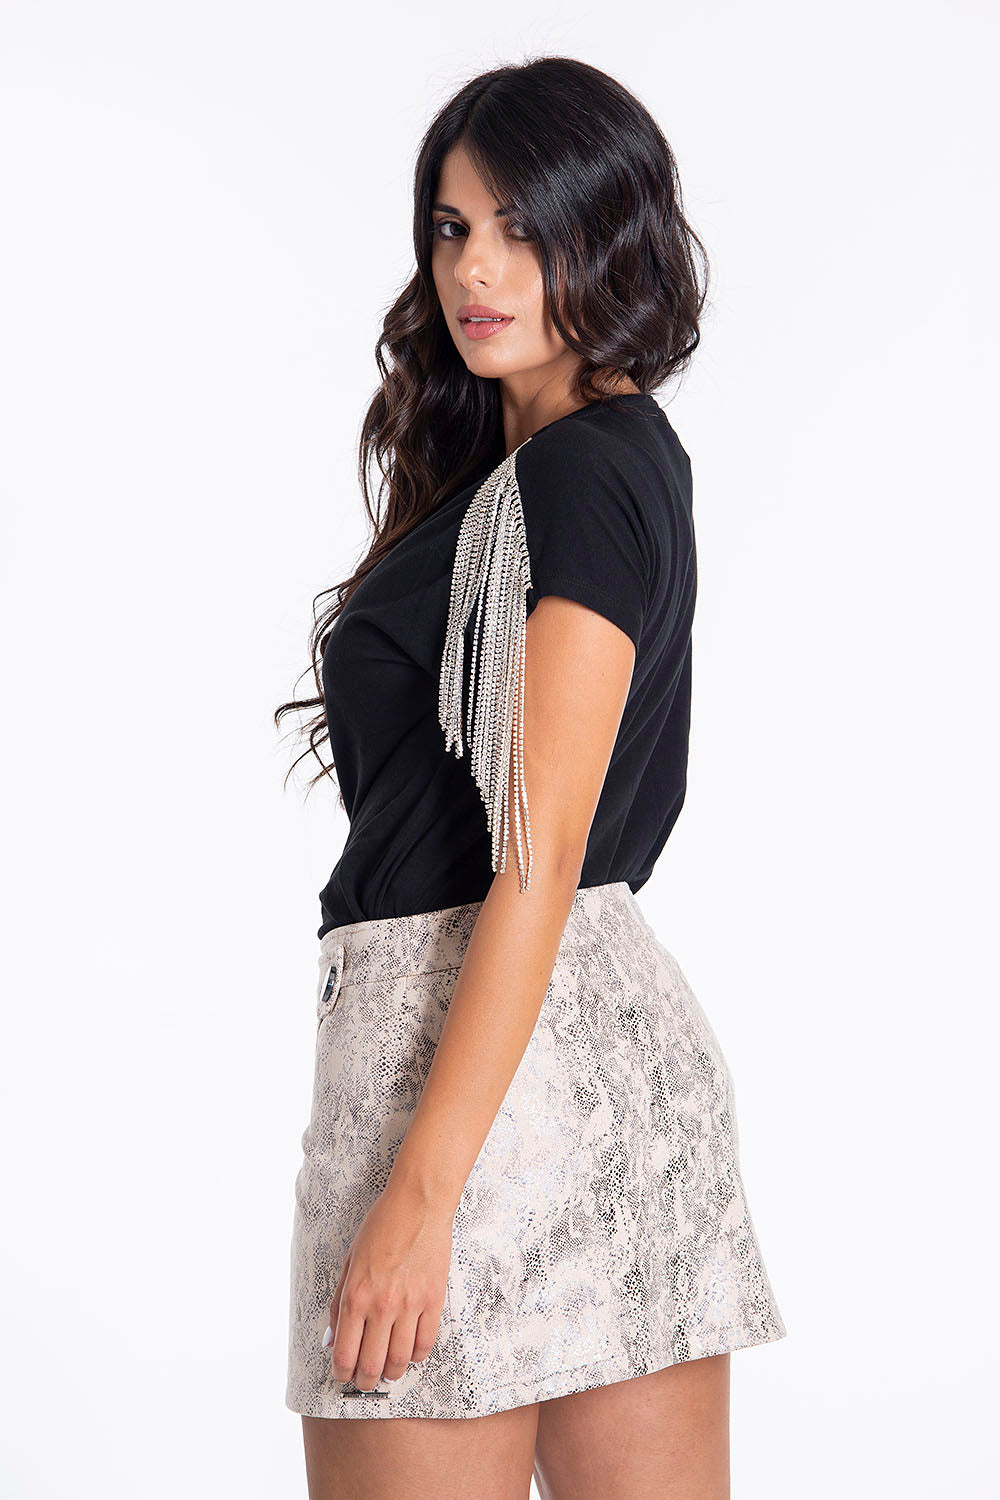 Hellen Batterr animal print mini skirt in wrap